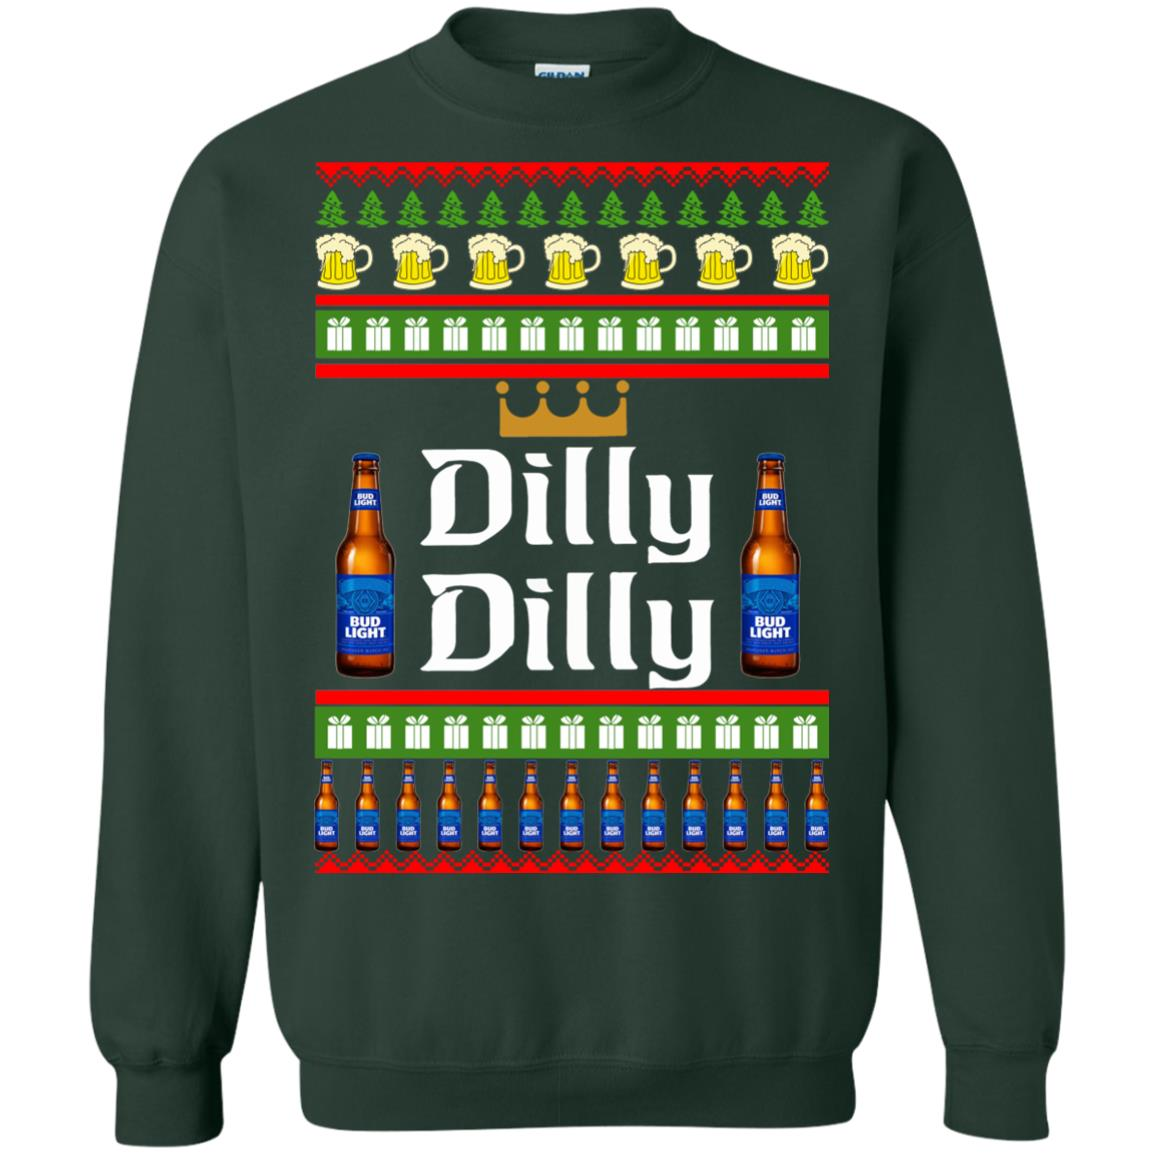 image 4239 - Bud Light: Dilly Dilly Ugly Sweater, Christmas Sweatshirts